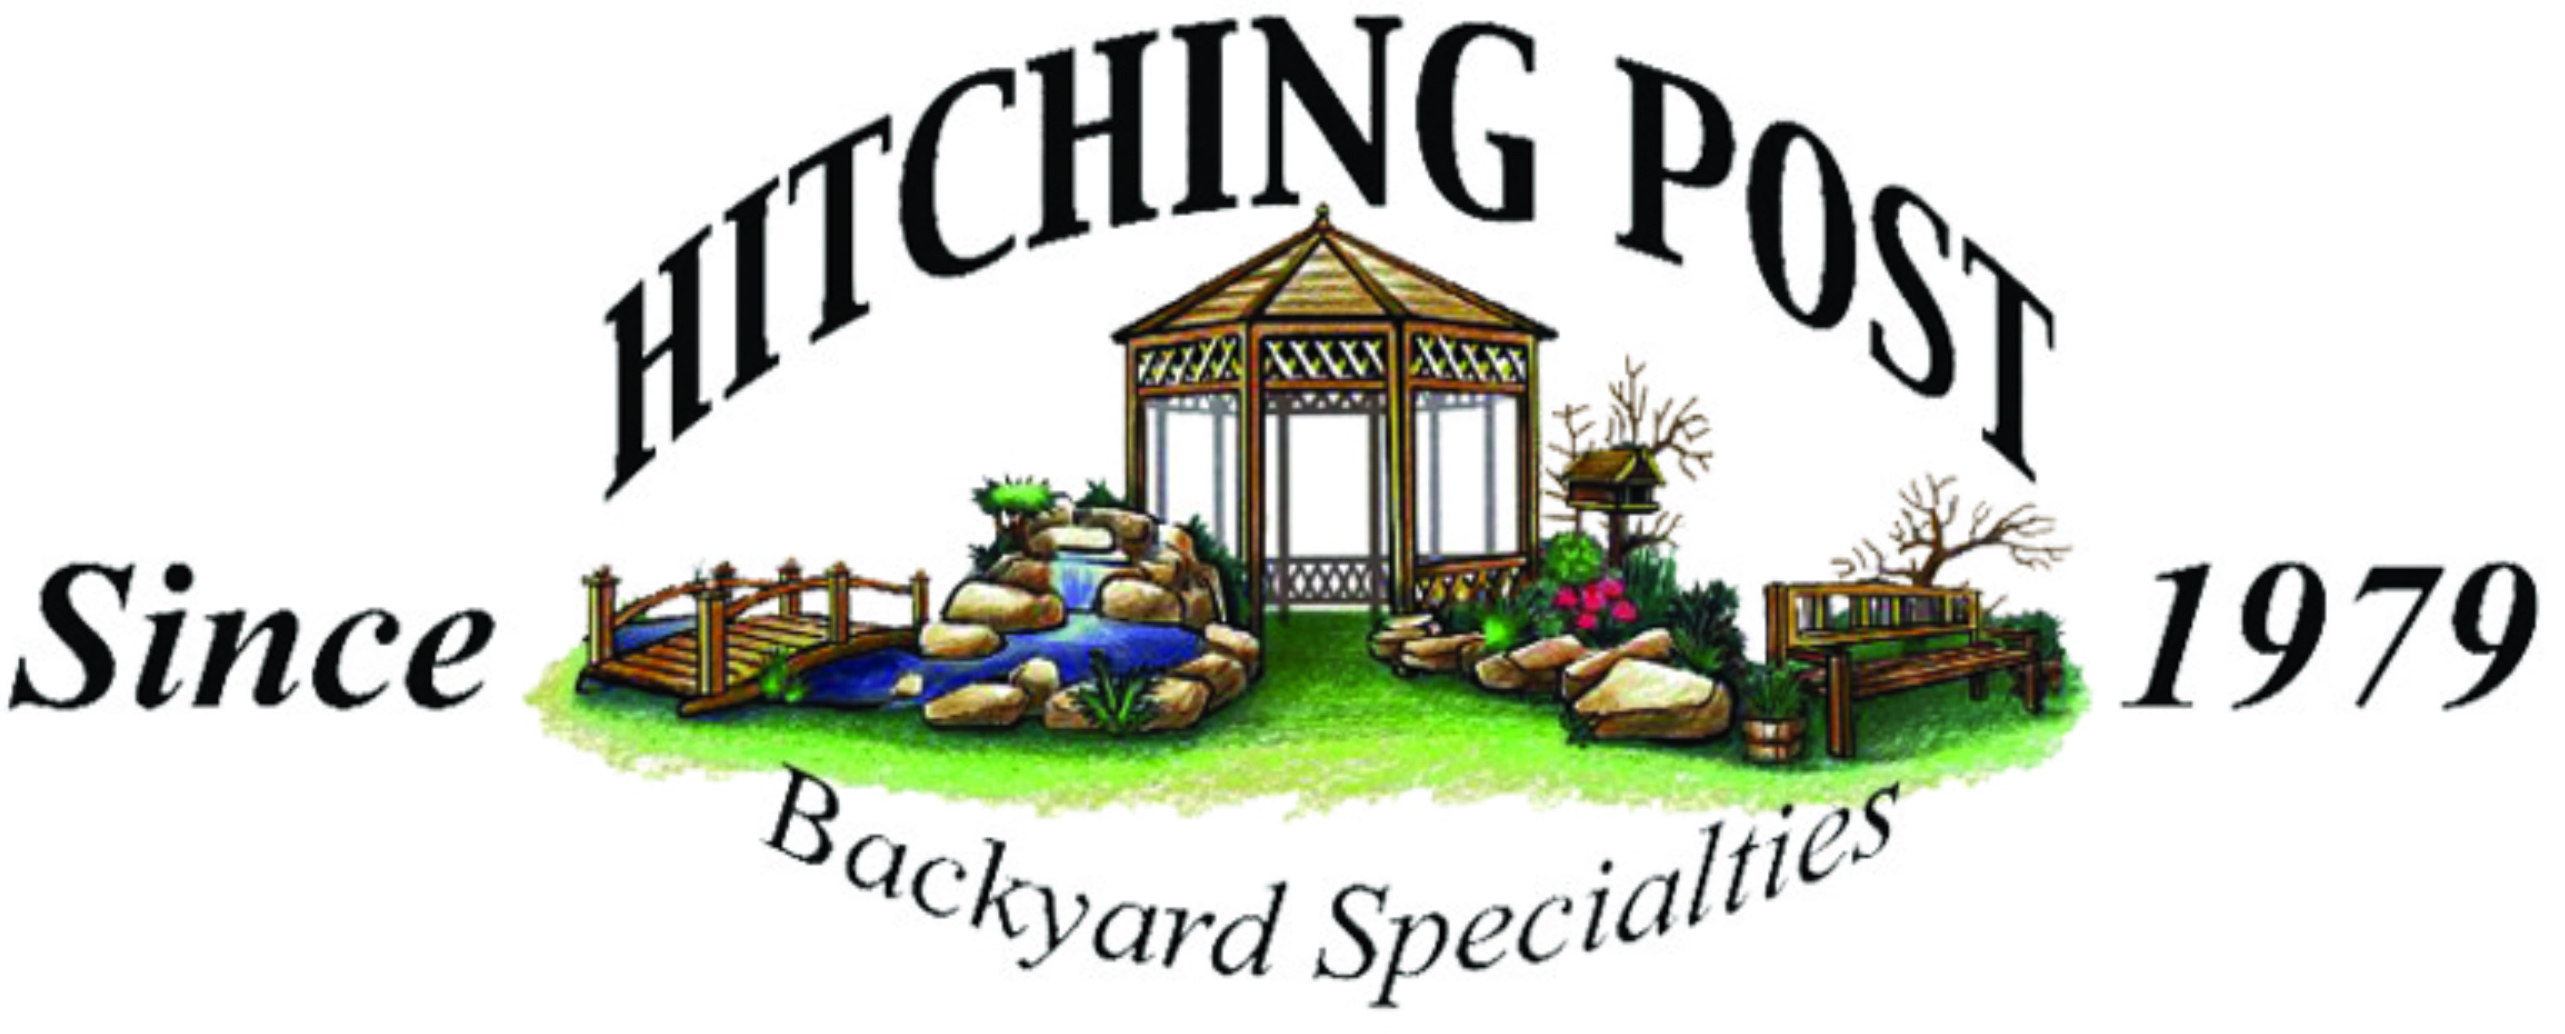 The Hitching Post Backyard Specialties